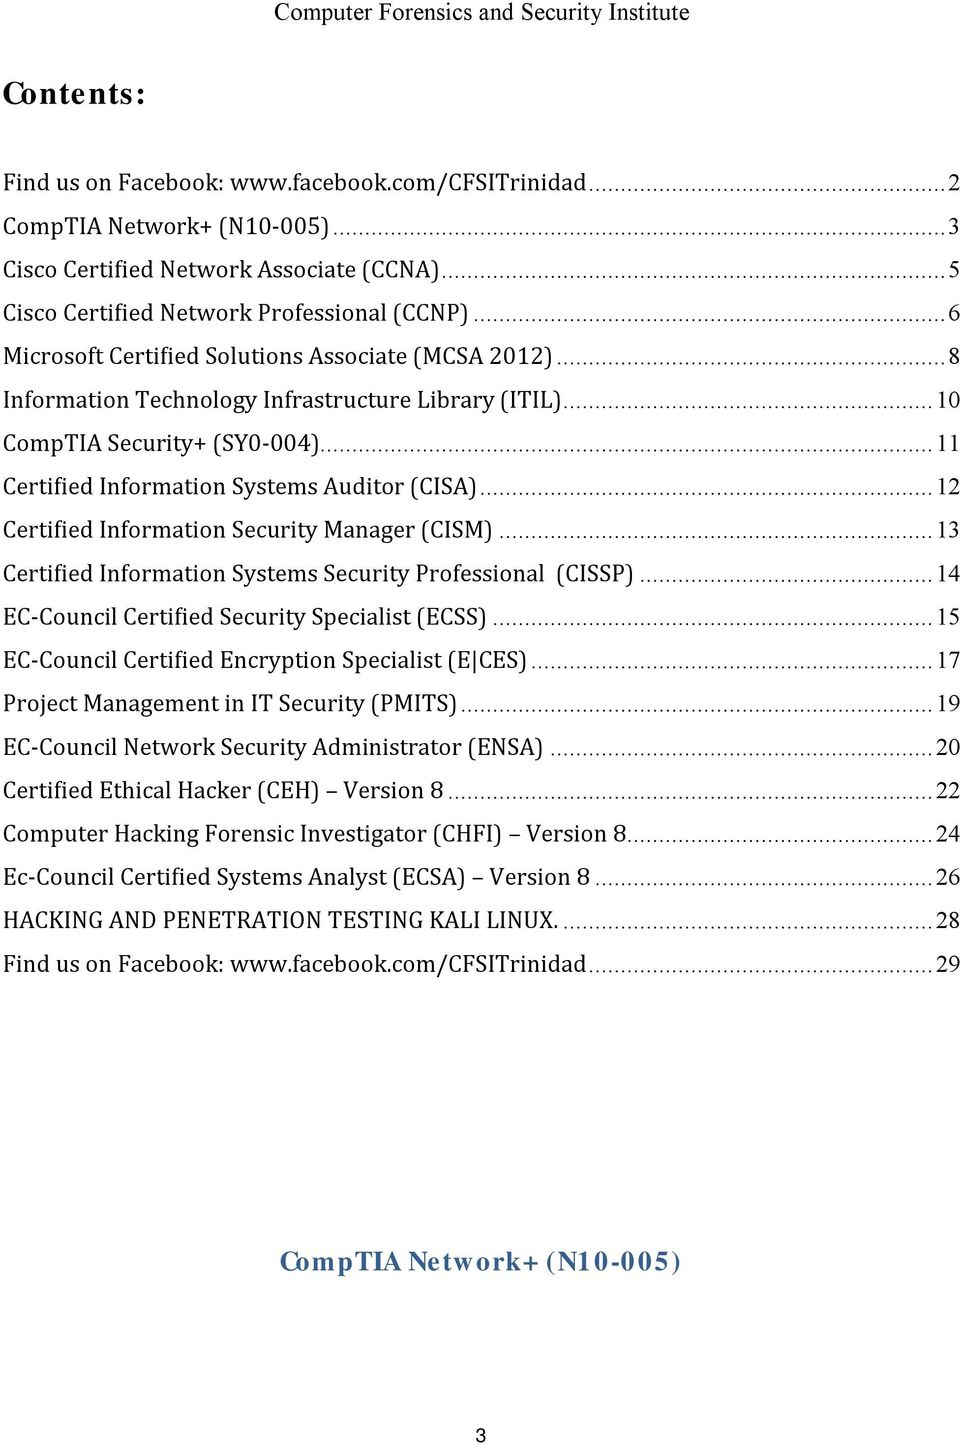 .. 12 Certified Information Security Manager (CISM)... 13 Certified Information Systems Security Professional (CISSP)... 14 EC-Council Certified Security Specialist (ECSS).